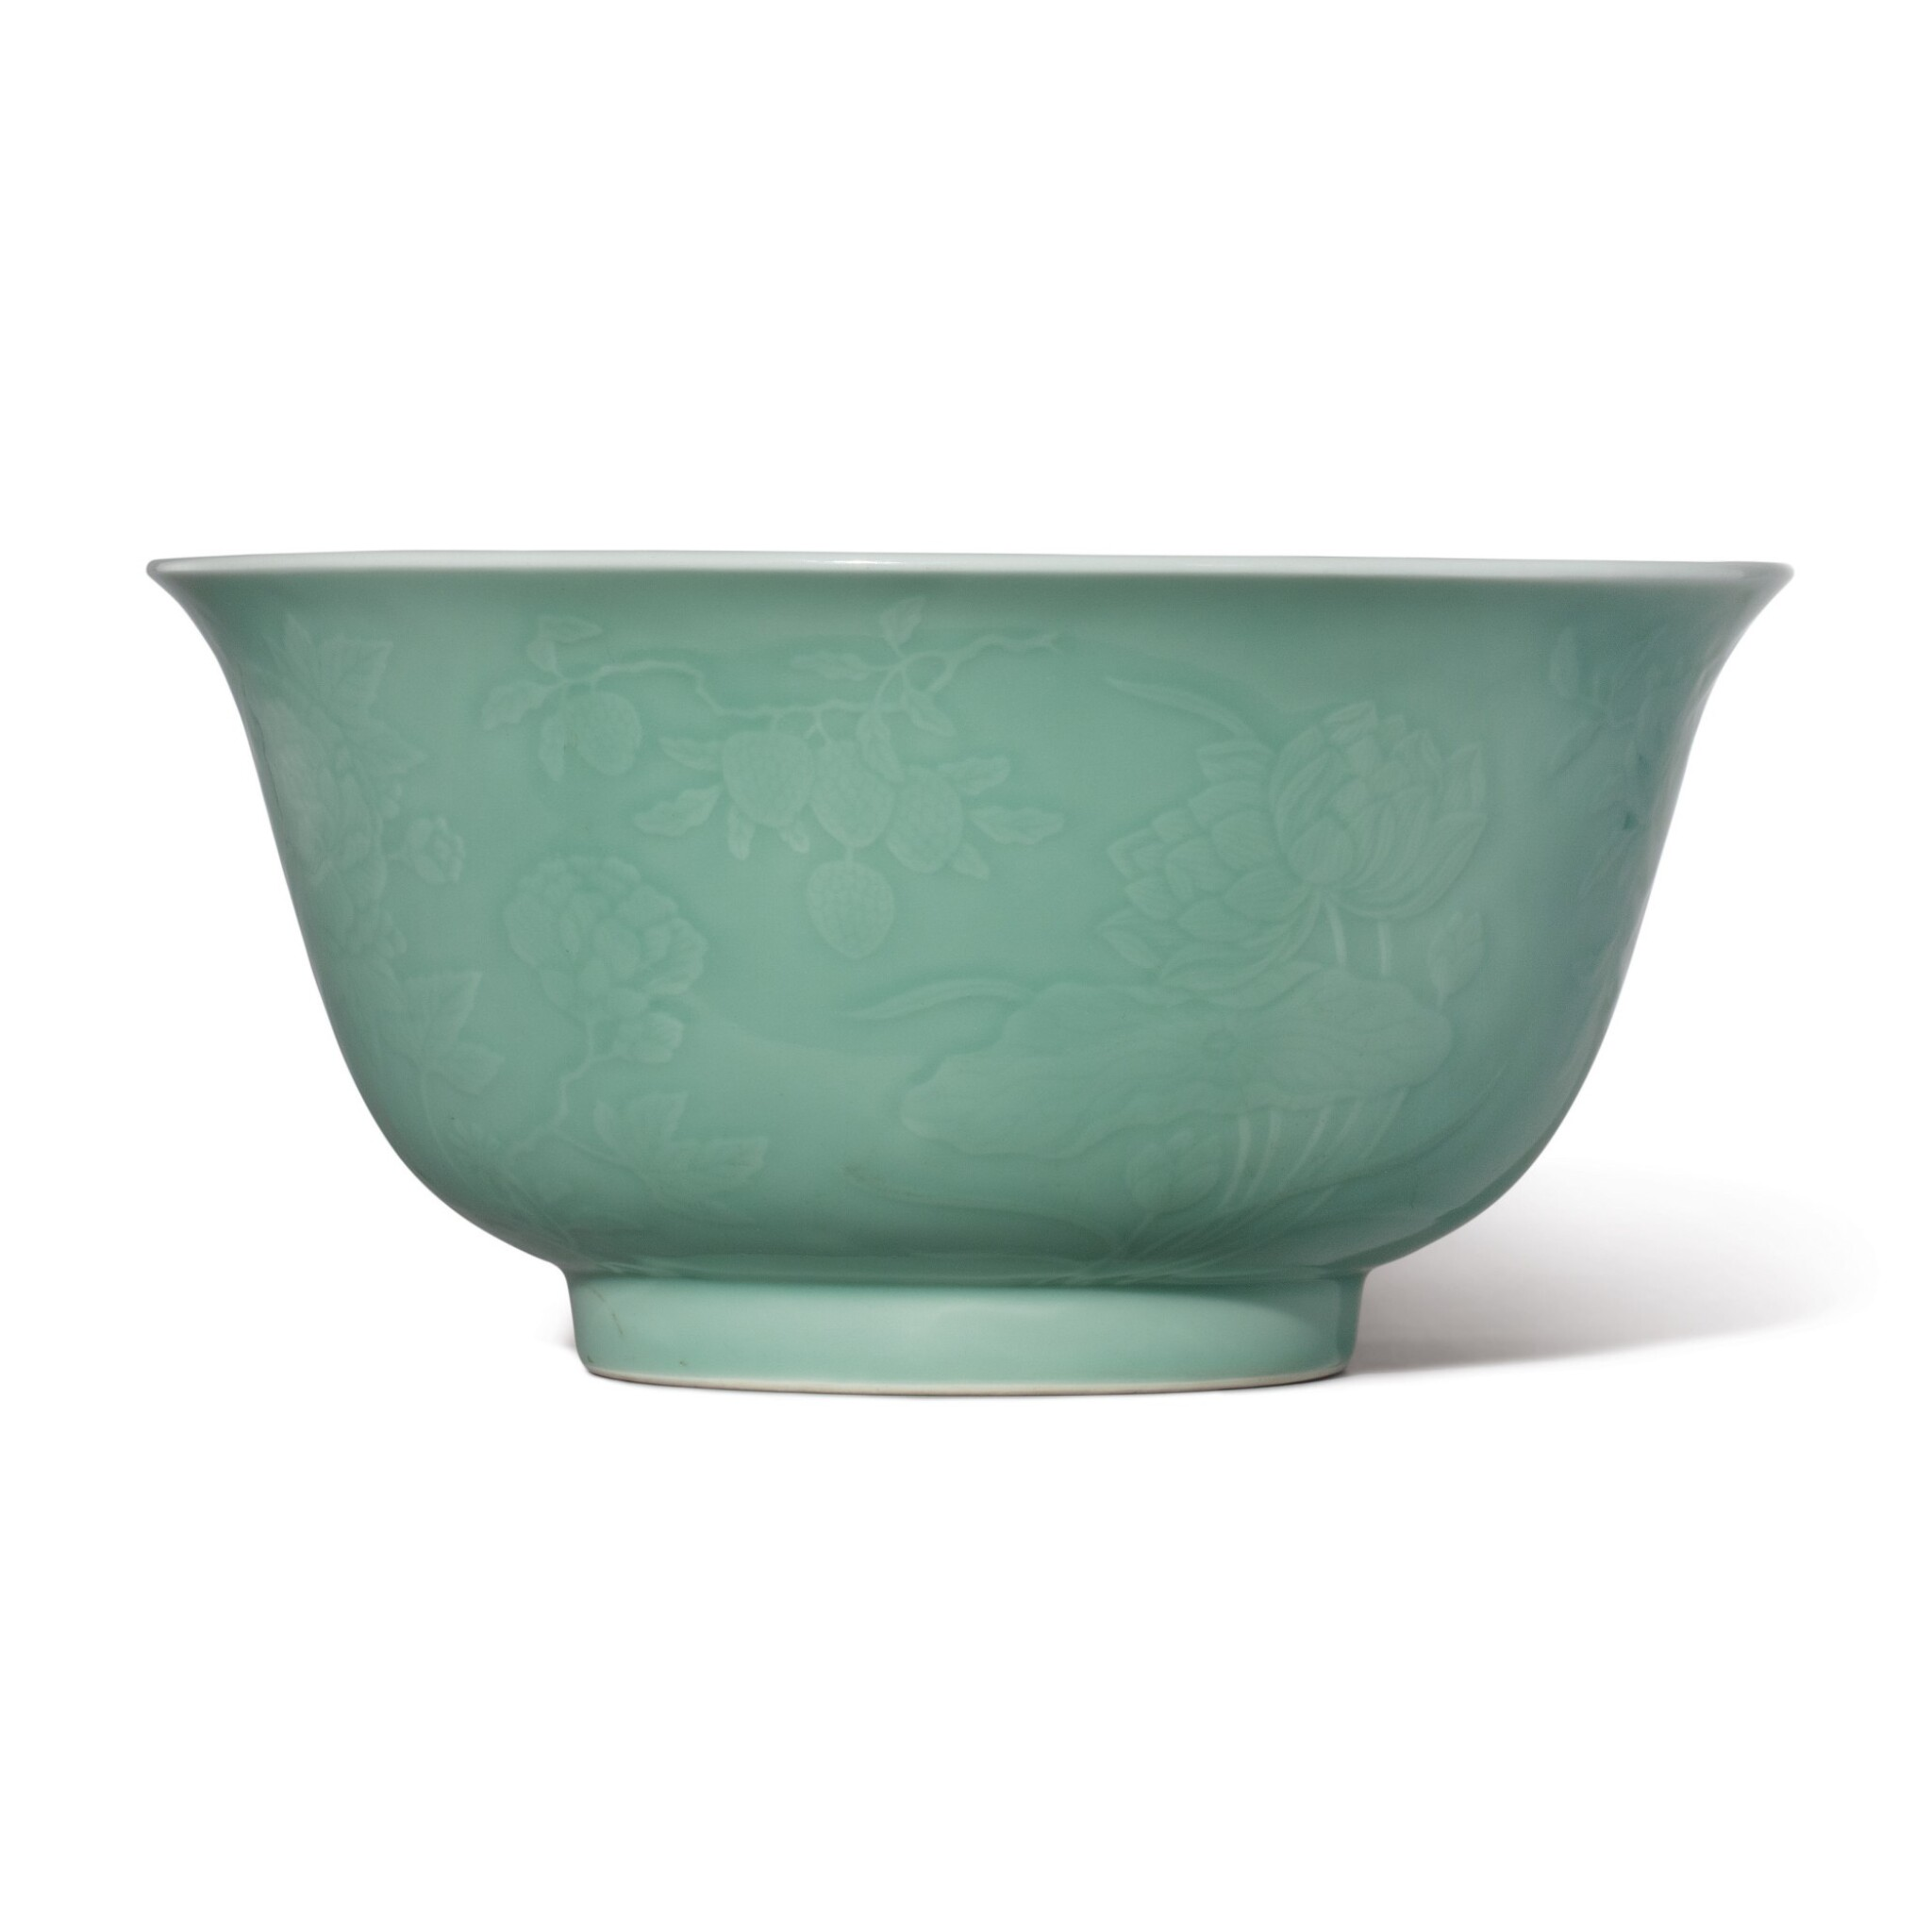 View 1 of Lot 532. A FINE LARGE MOLDED CELADON-GLAZED BOWL,  QIANLONG SEAL MARK AND PERIOD.